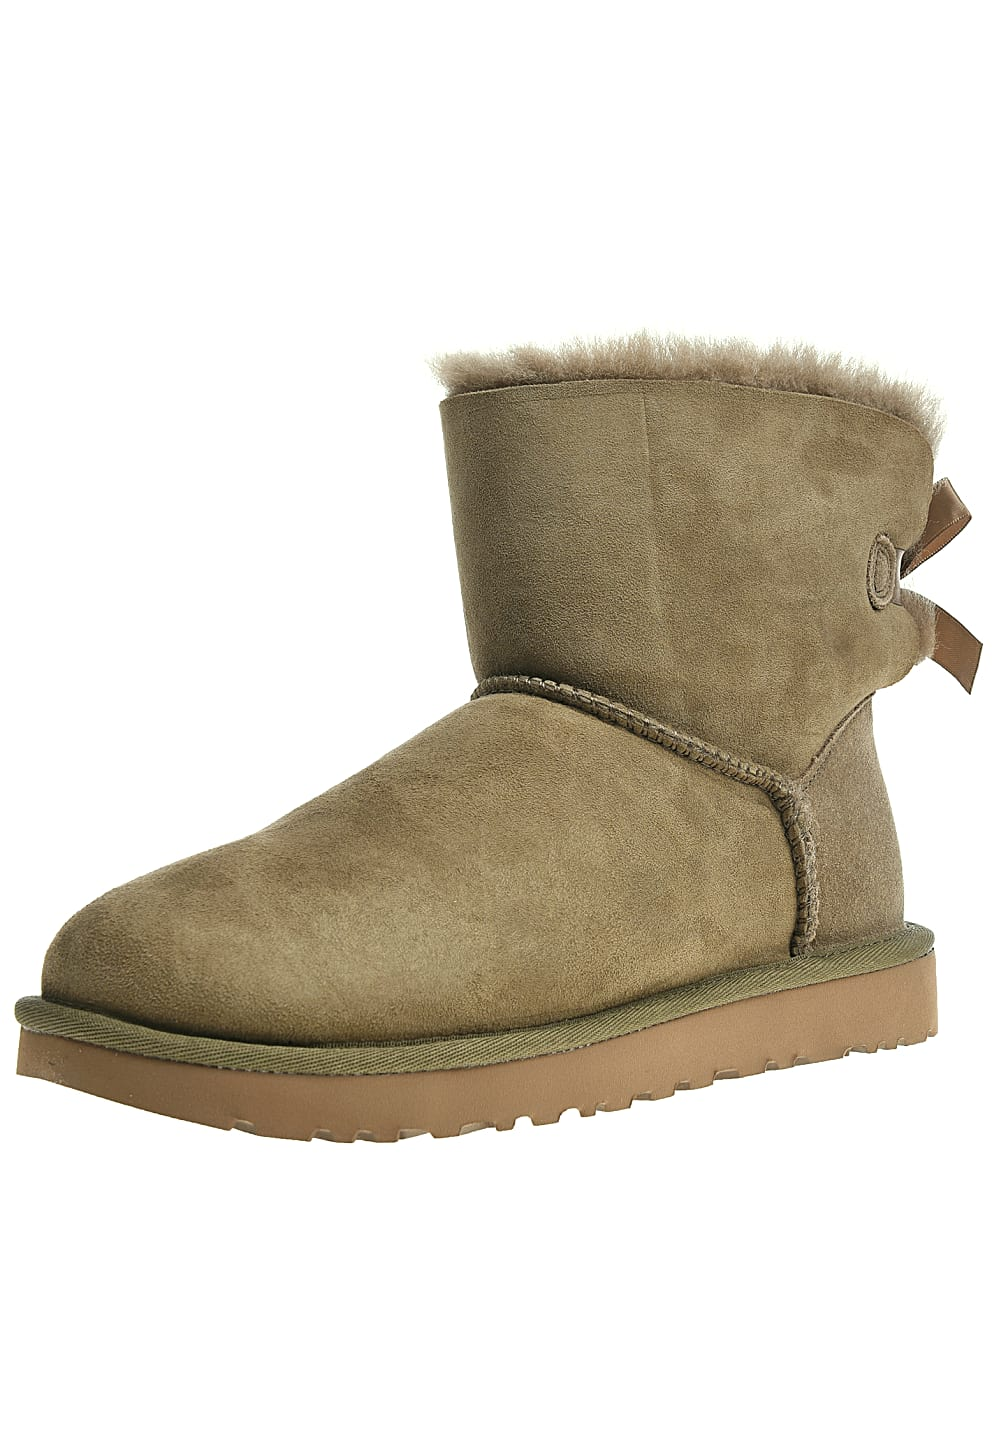 fc2953ffdafd UGG Mini Bailey Bow II - Boots for Women - Brown - Planet Sports